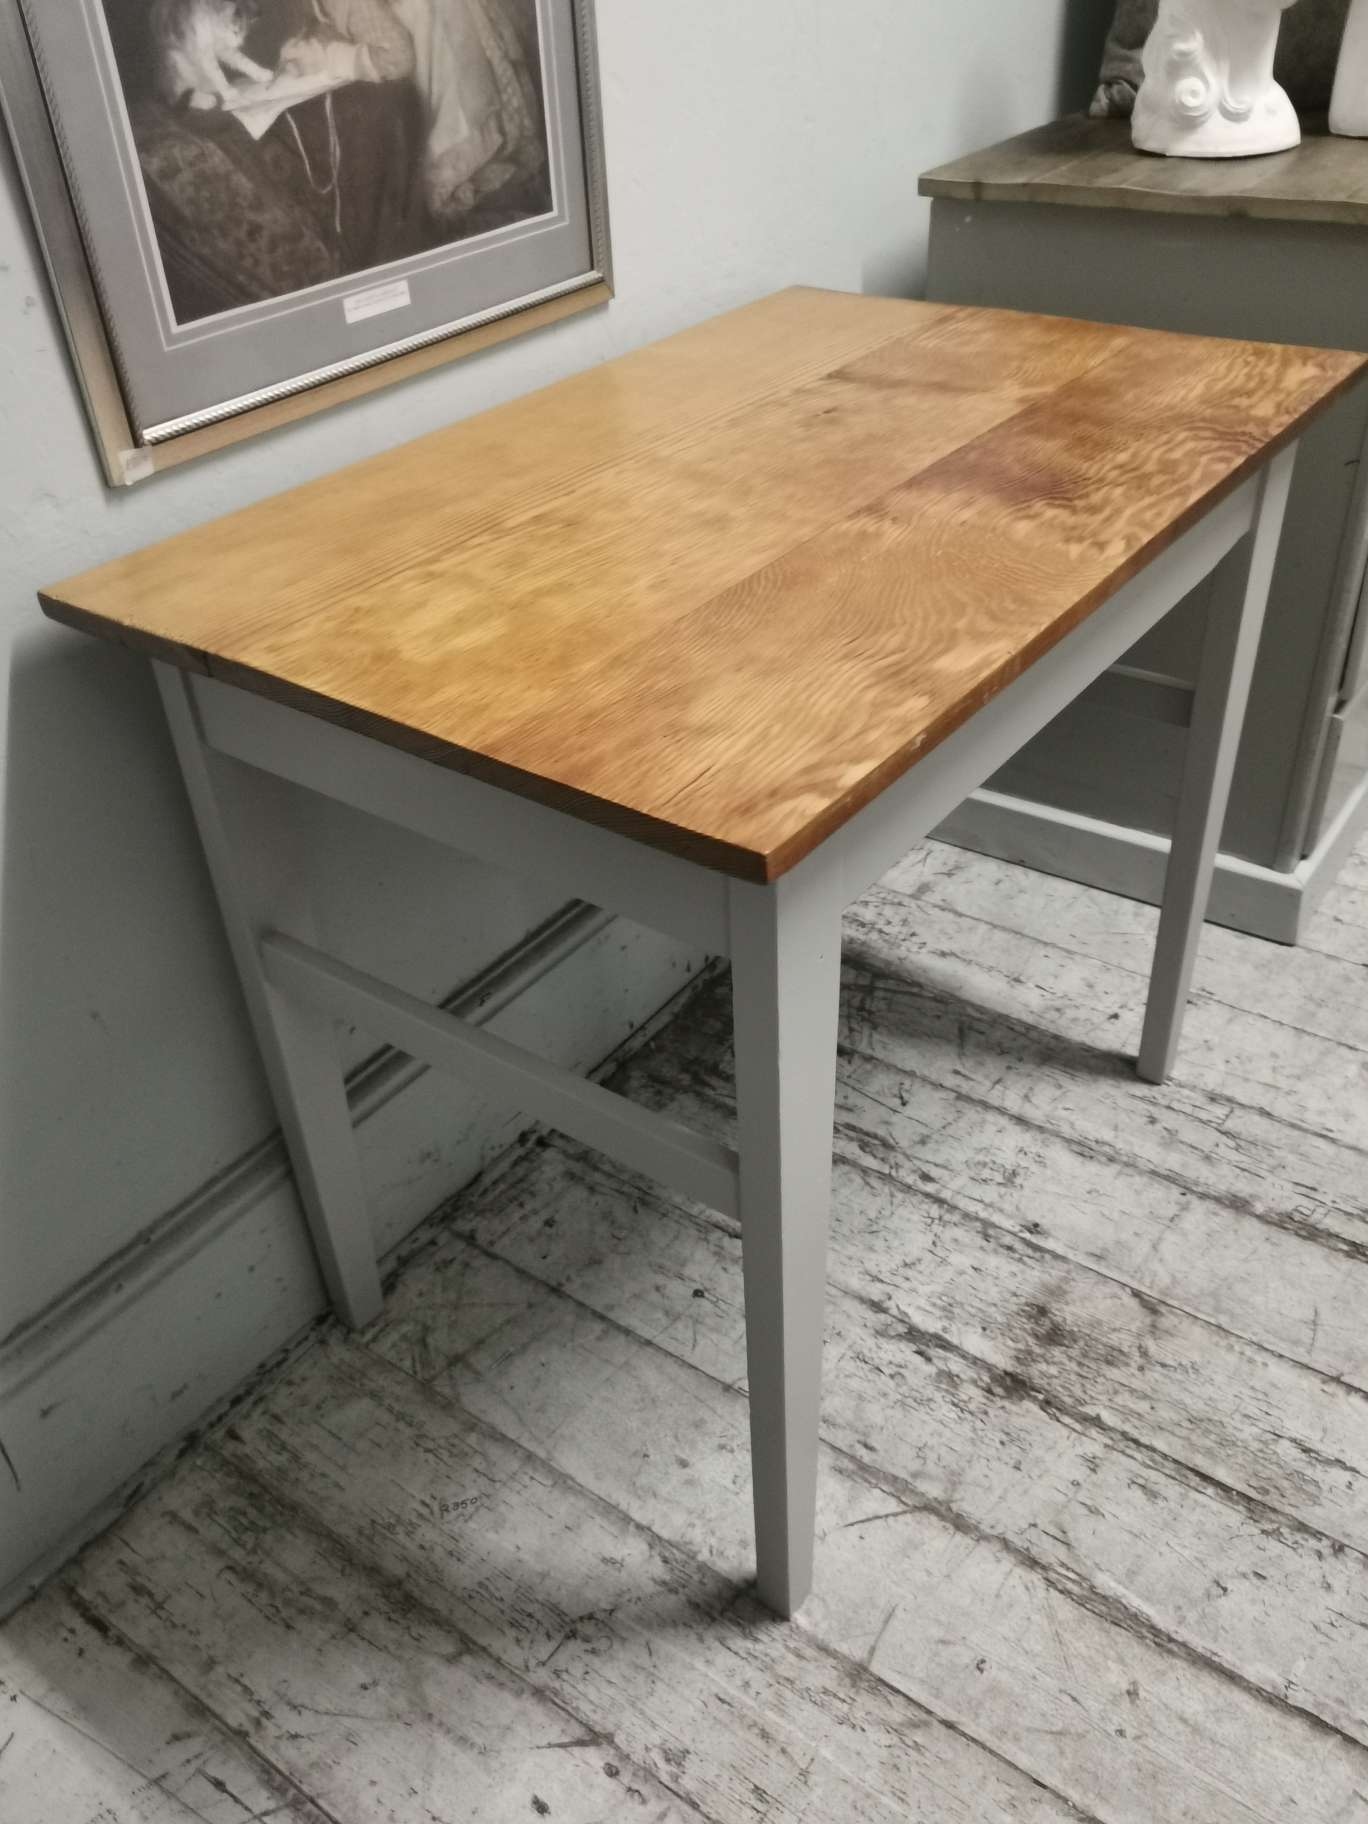 Small oregan table with painted legs